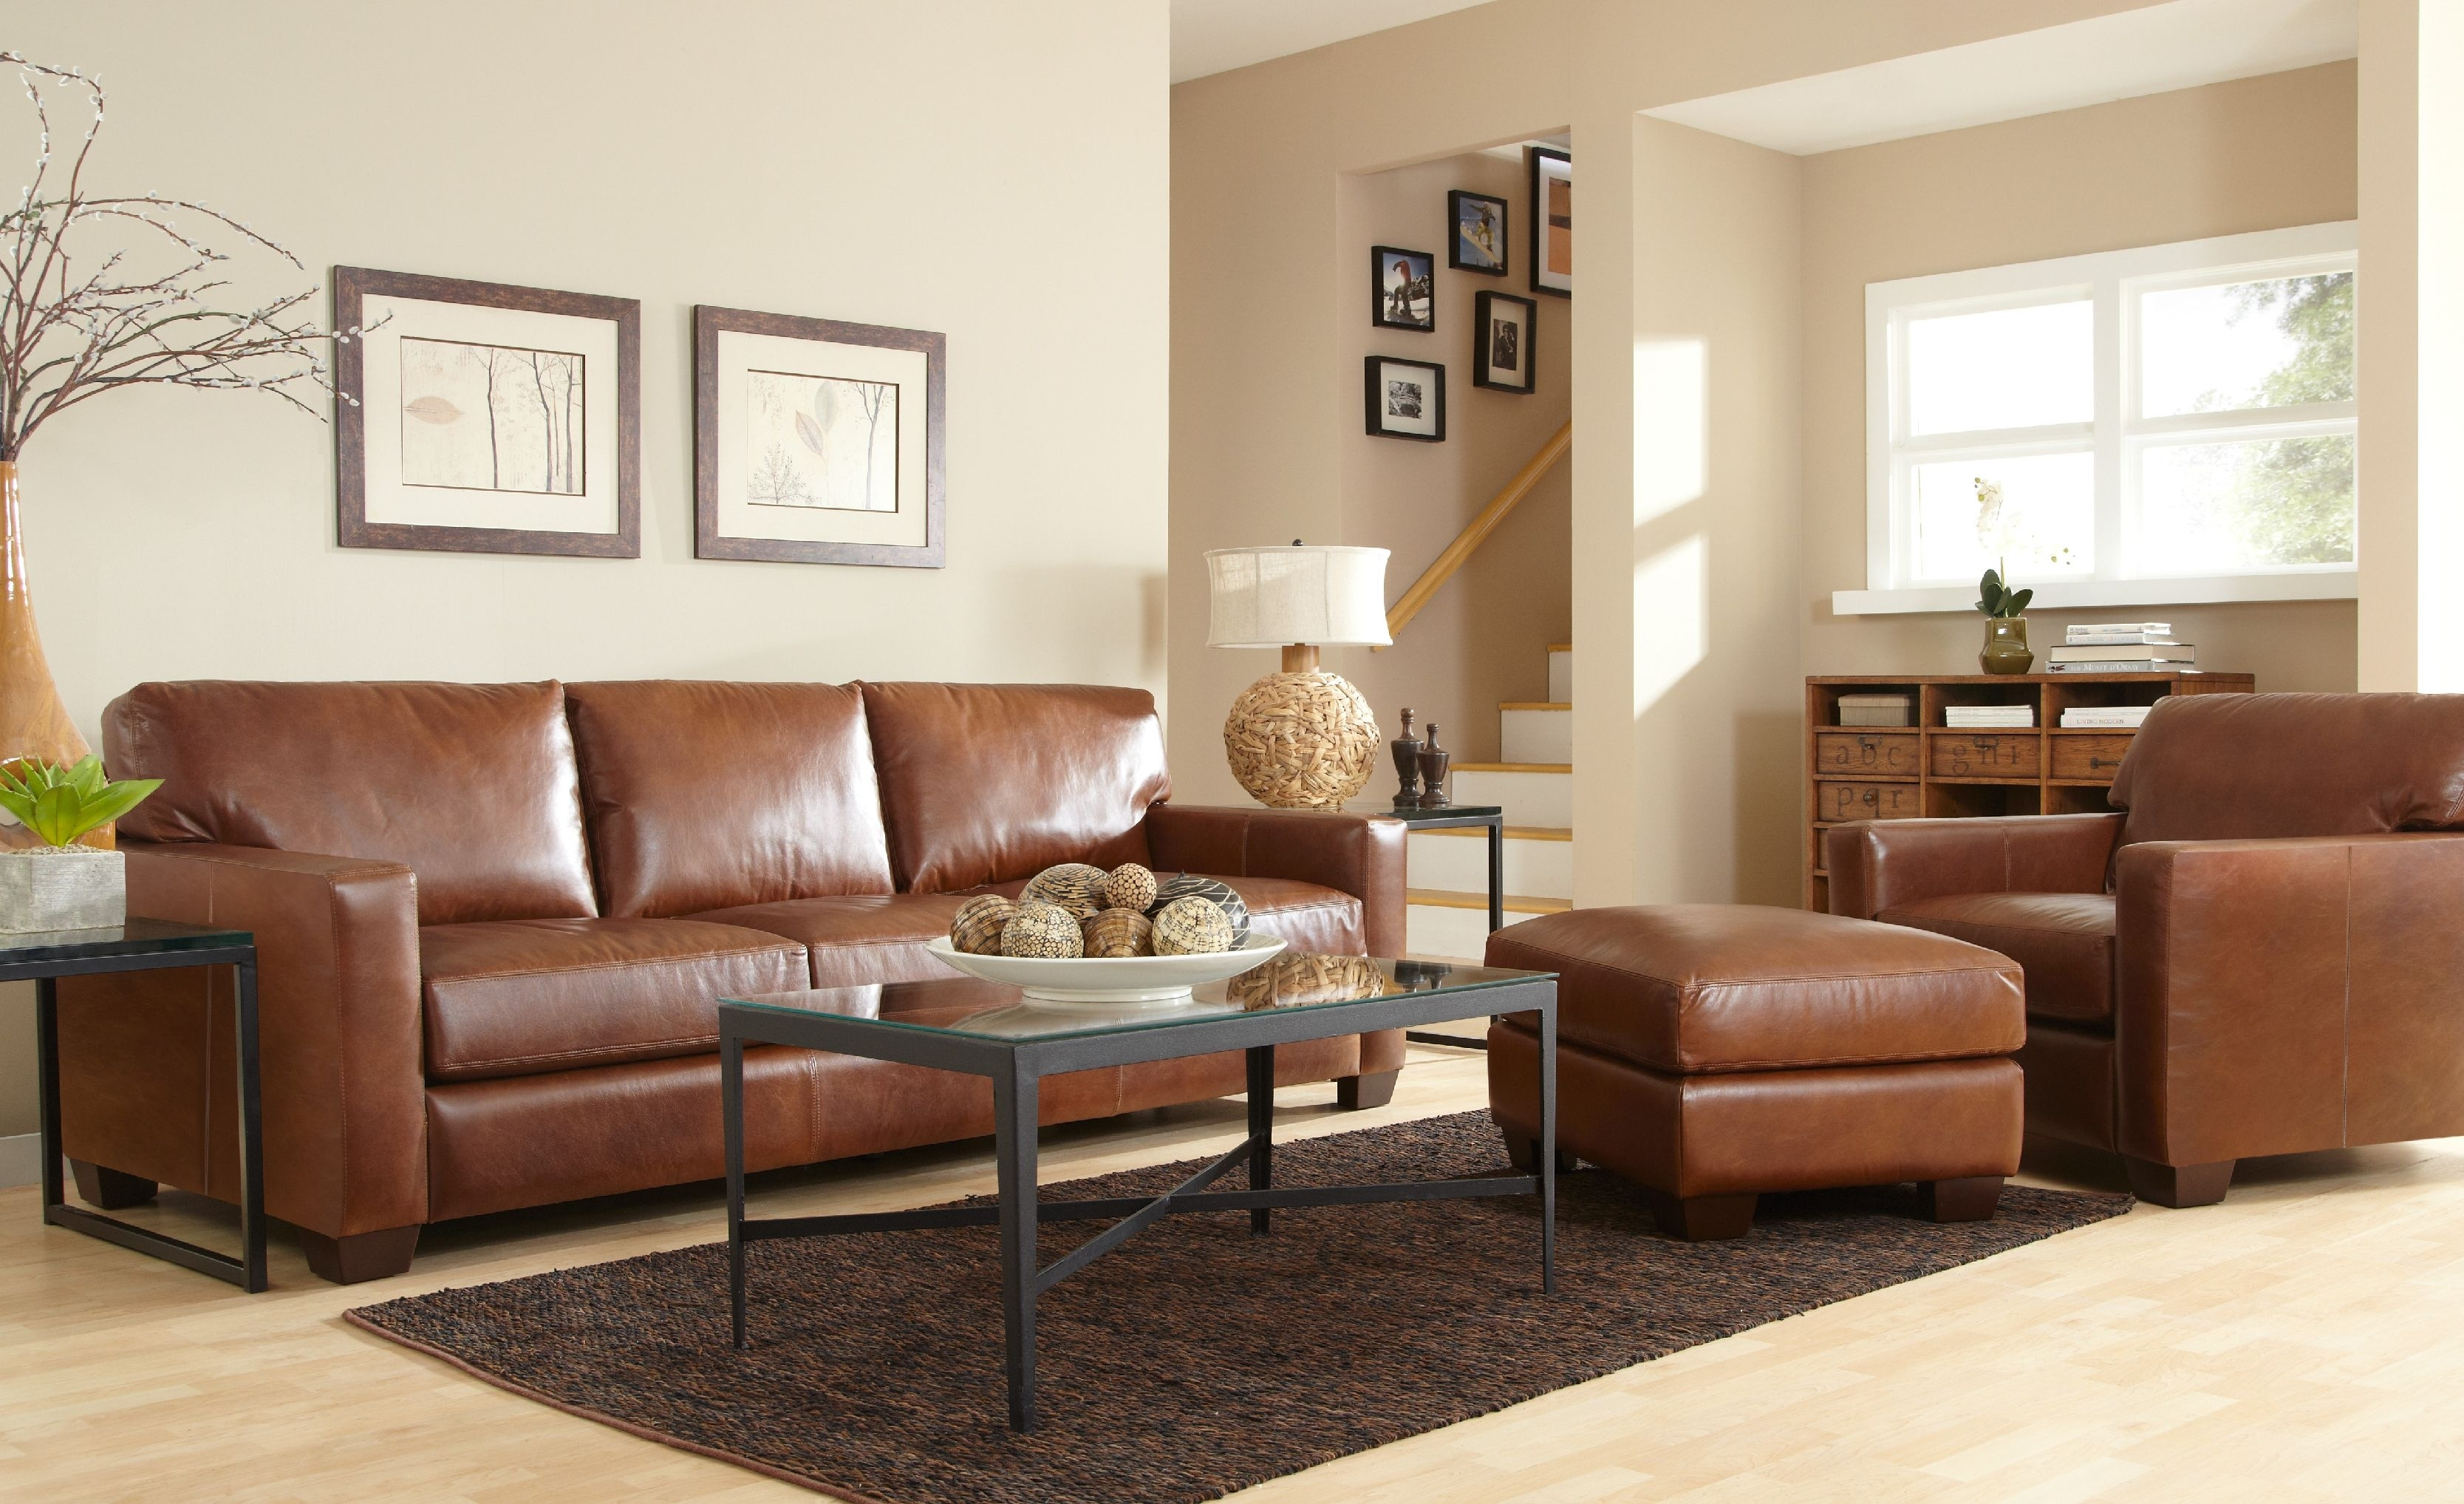 Dillards Sofa U2013 Home Design Ideas And Pictures Inside Dillards Sectional  Sofas (Photo 7 Of